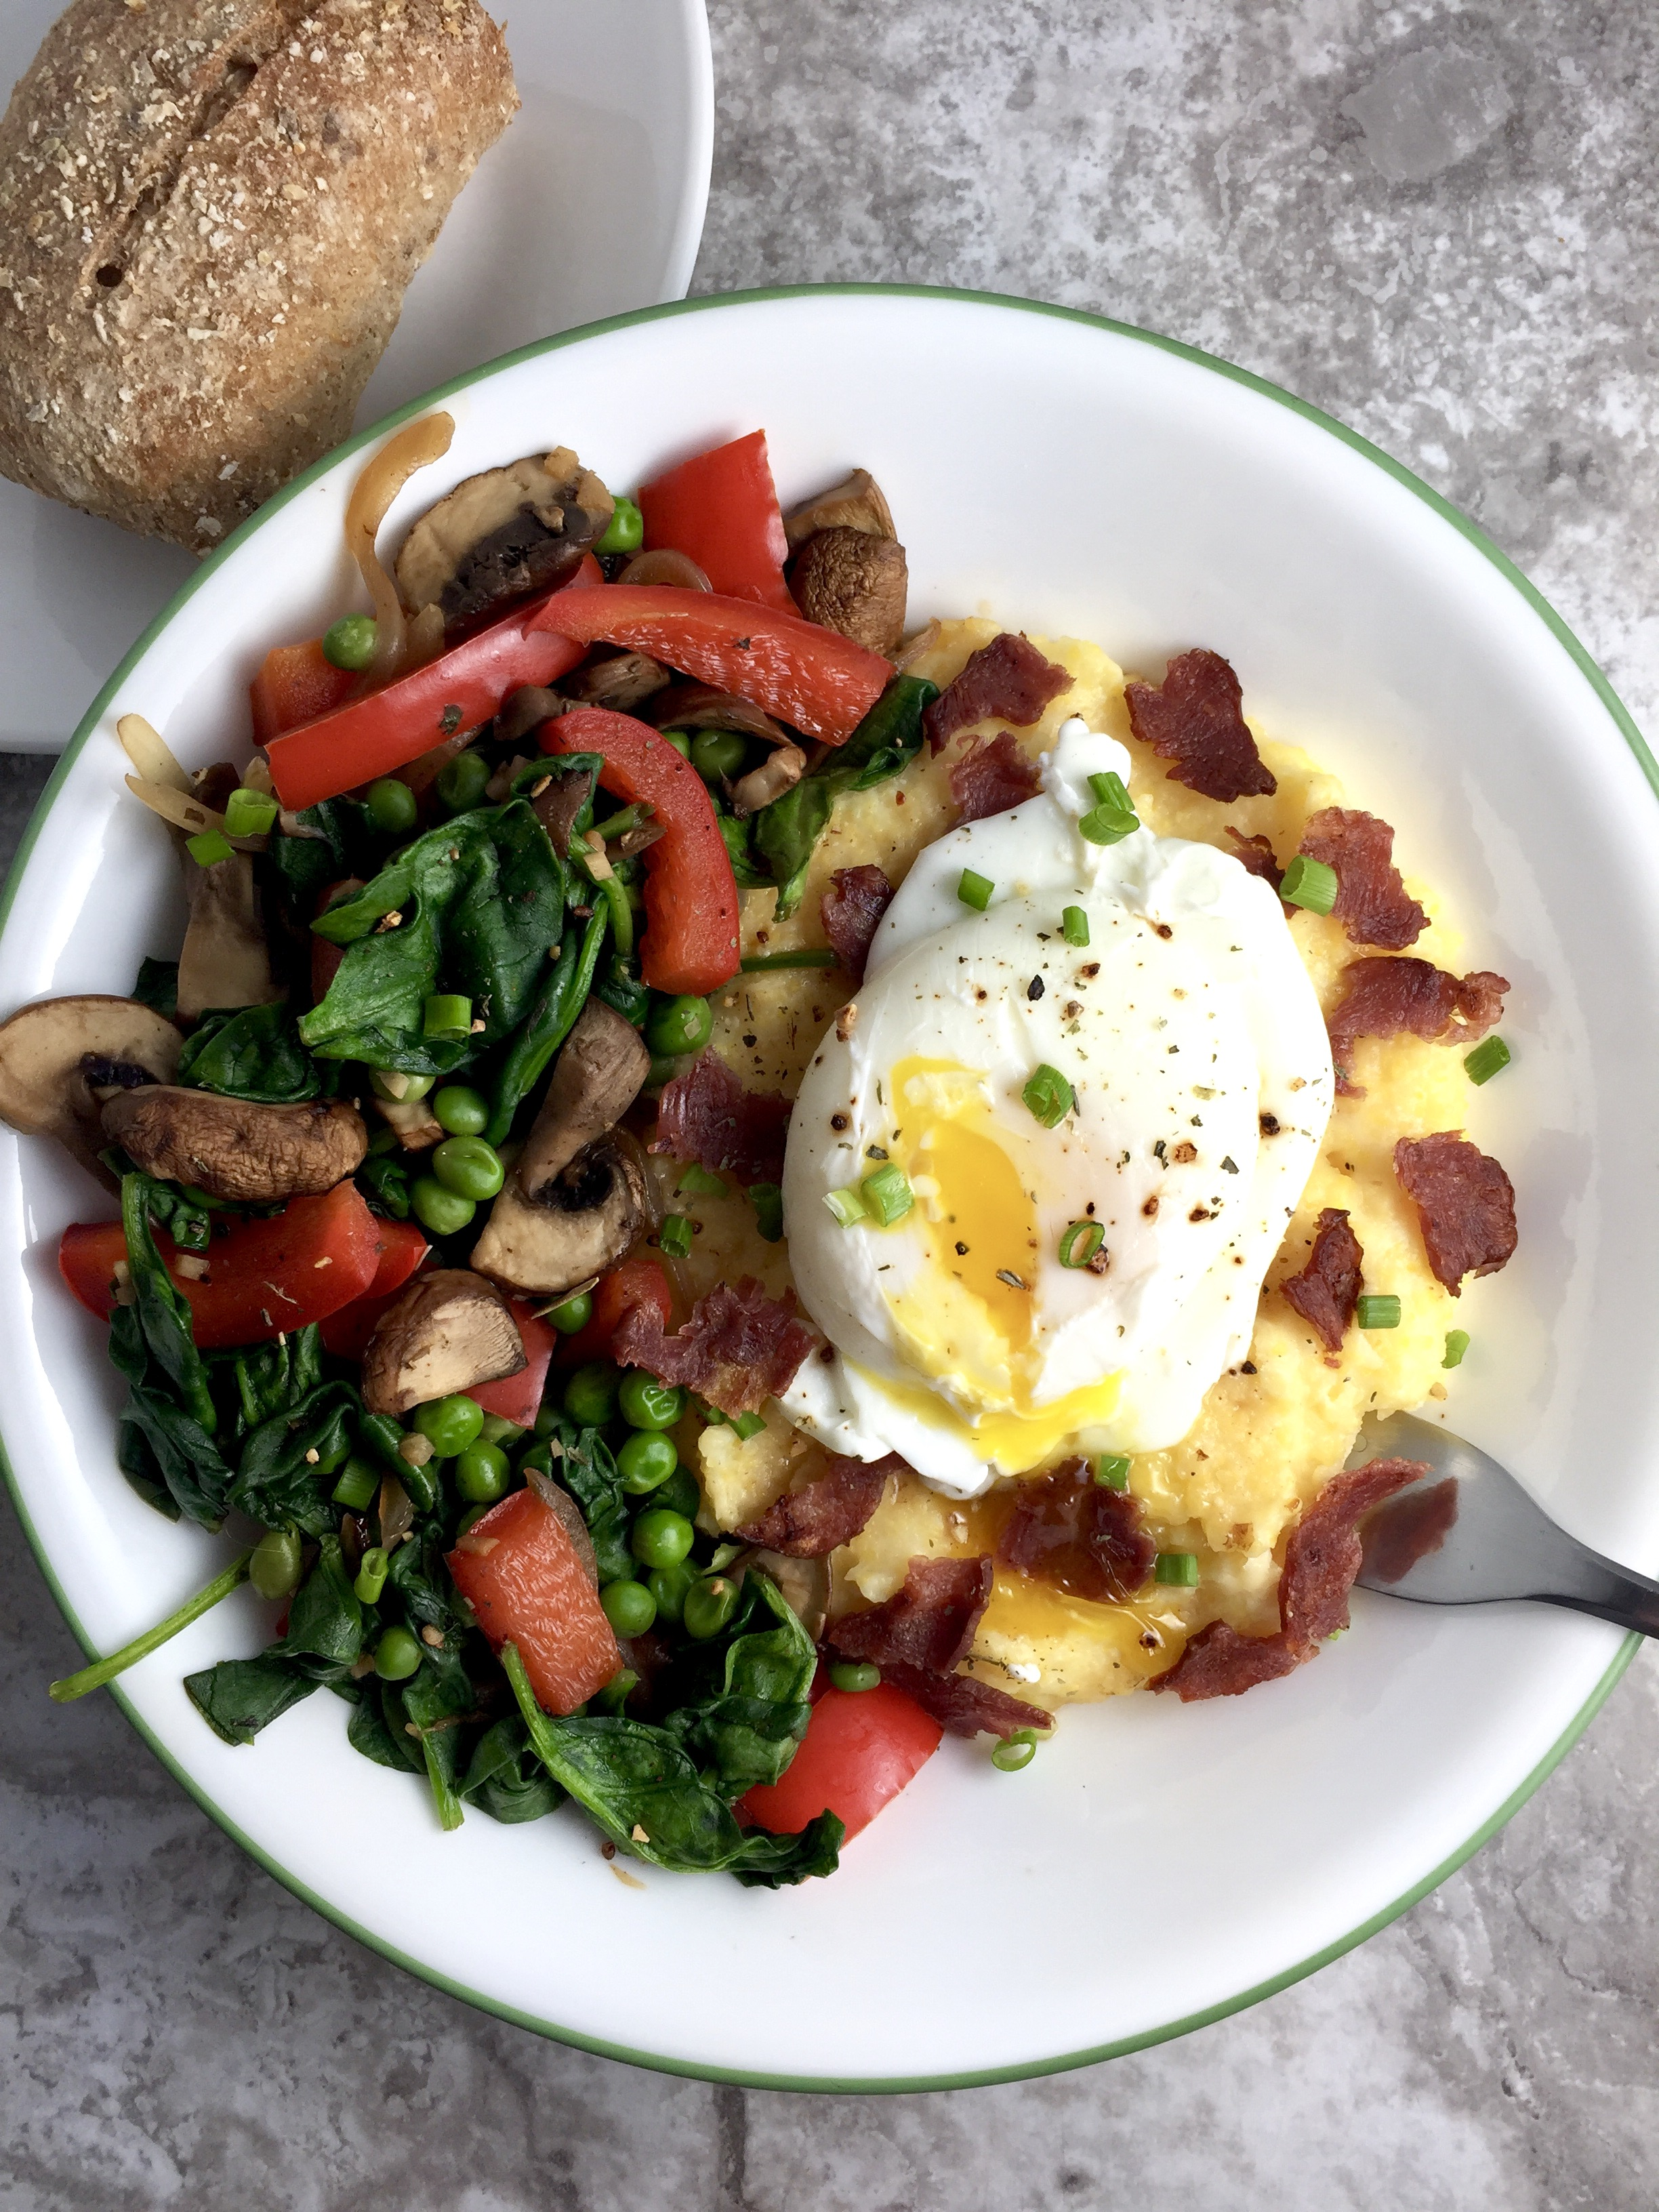 Easy Cheesy Grits Bowl with Egg and Veggies